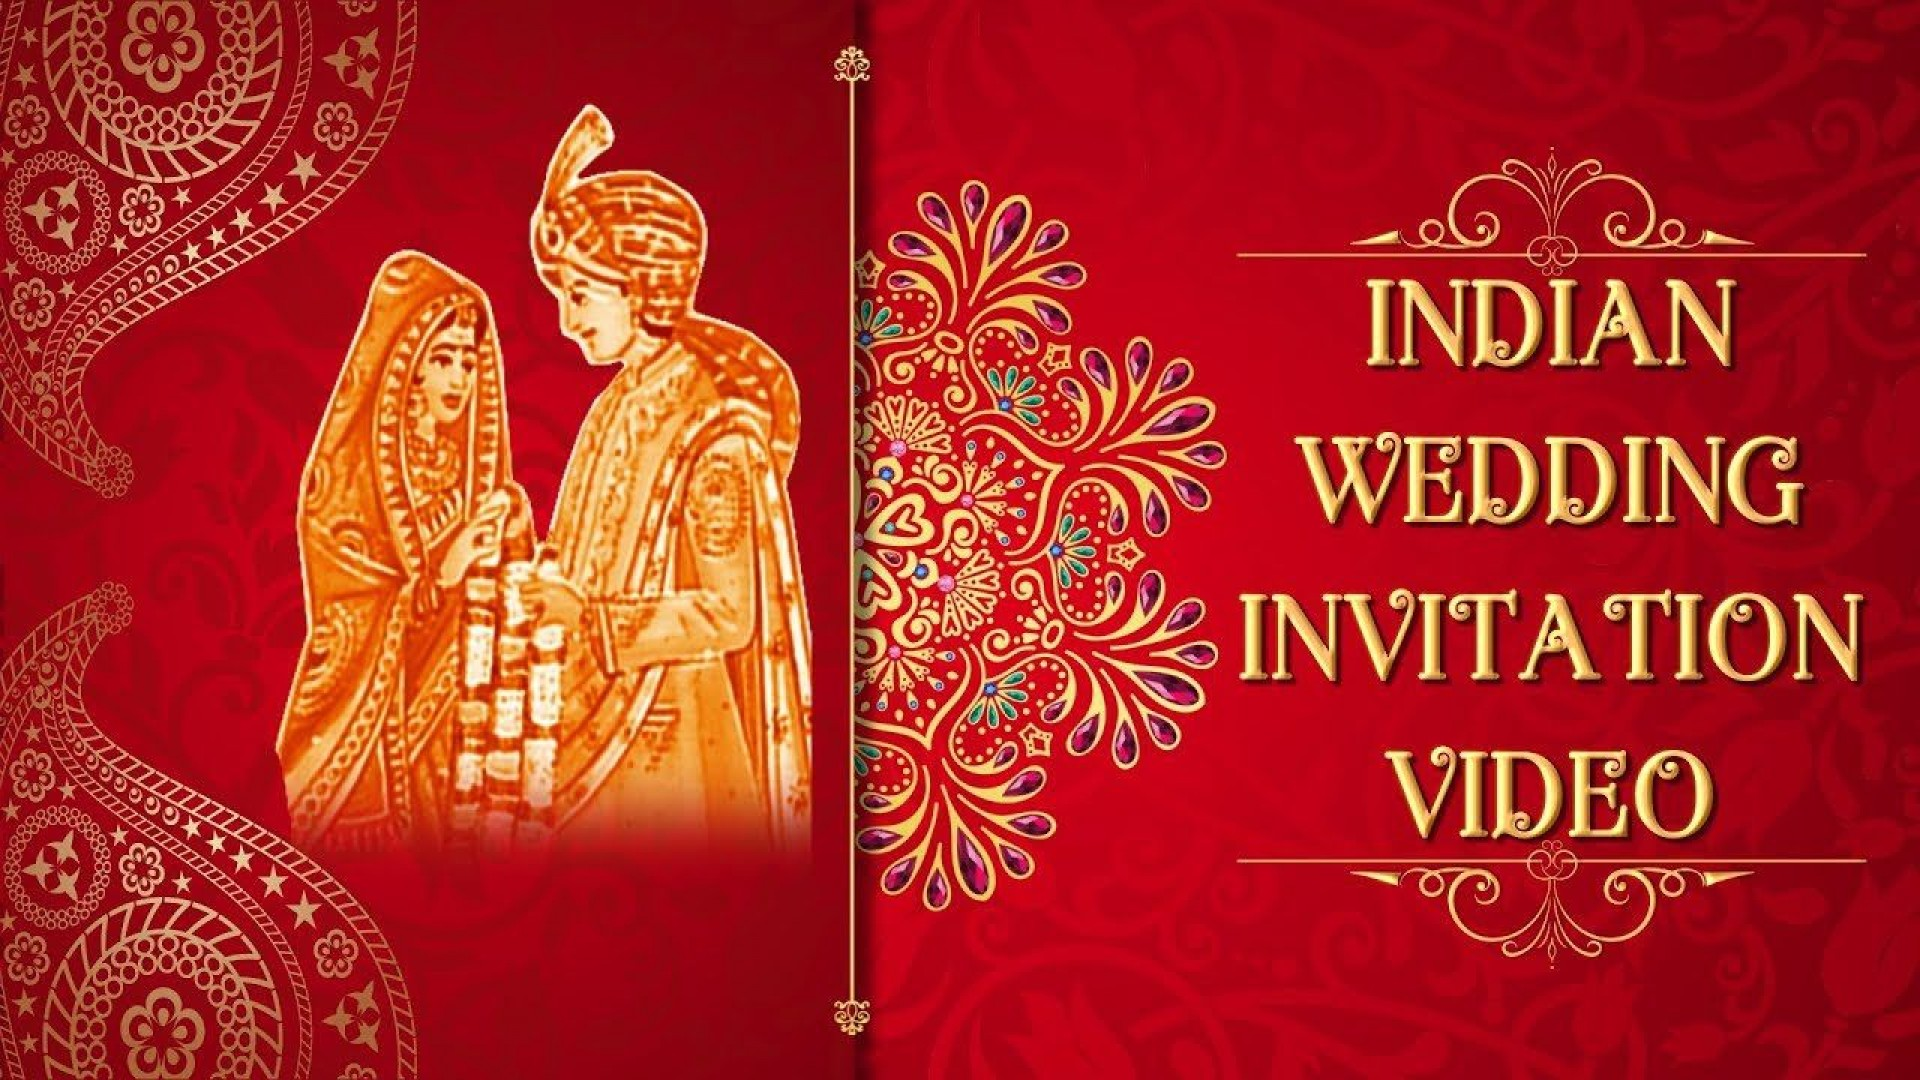 006 Frightening Free Online Indian Wedding Invitation Card Template Photo 1920